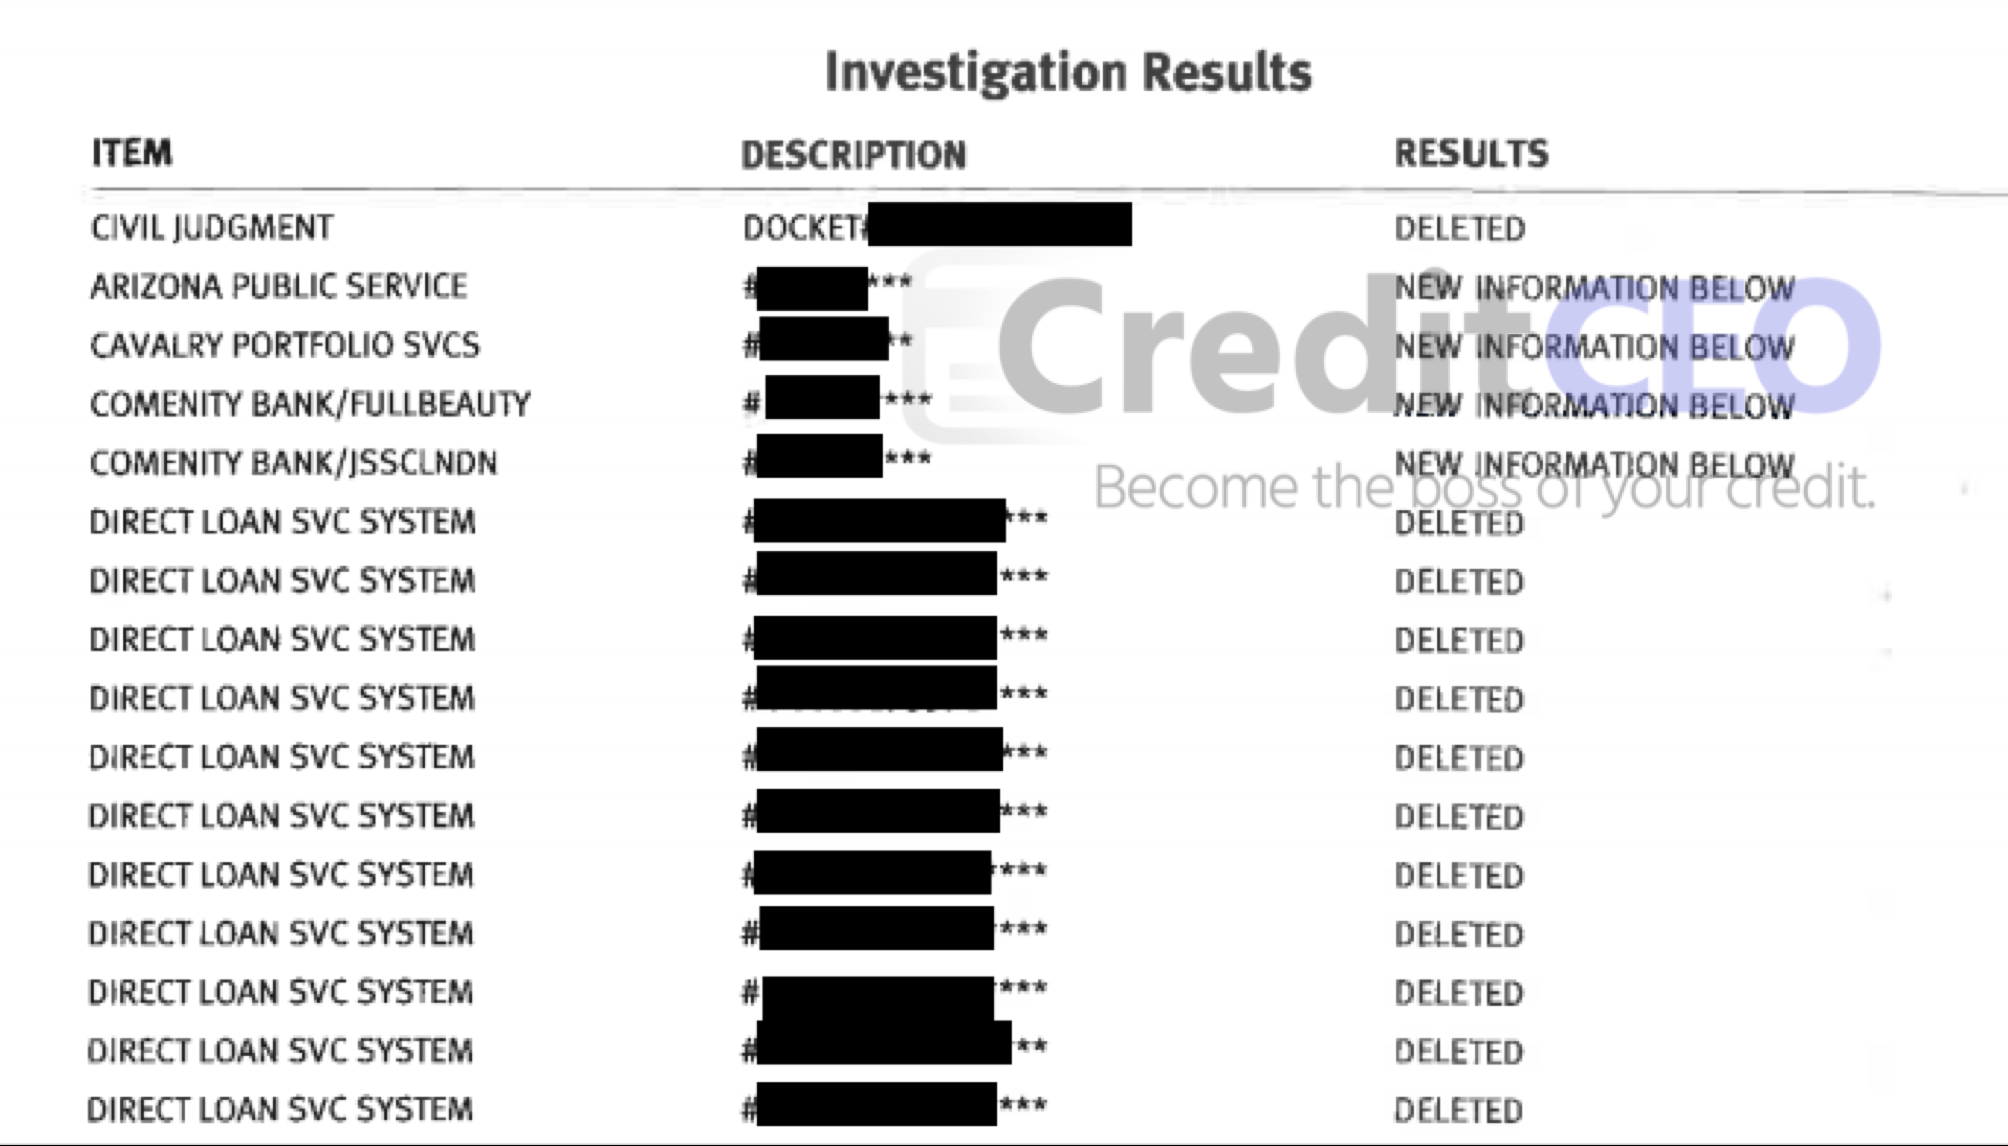 8db569cc9f070cfc468ee95975fbd753 - How To Get A Repossession Removed From Credit Report